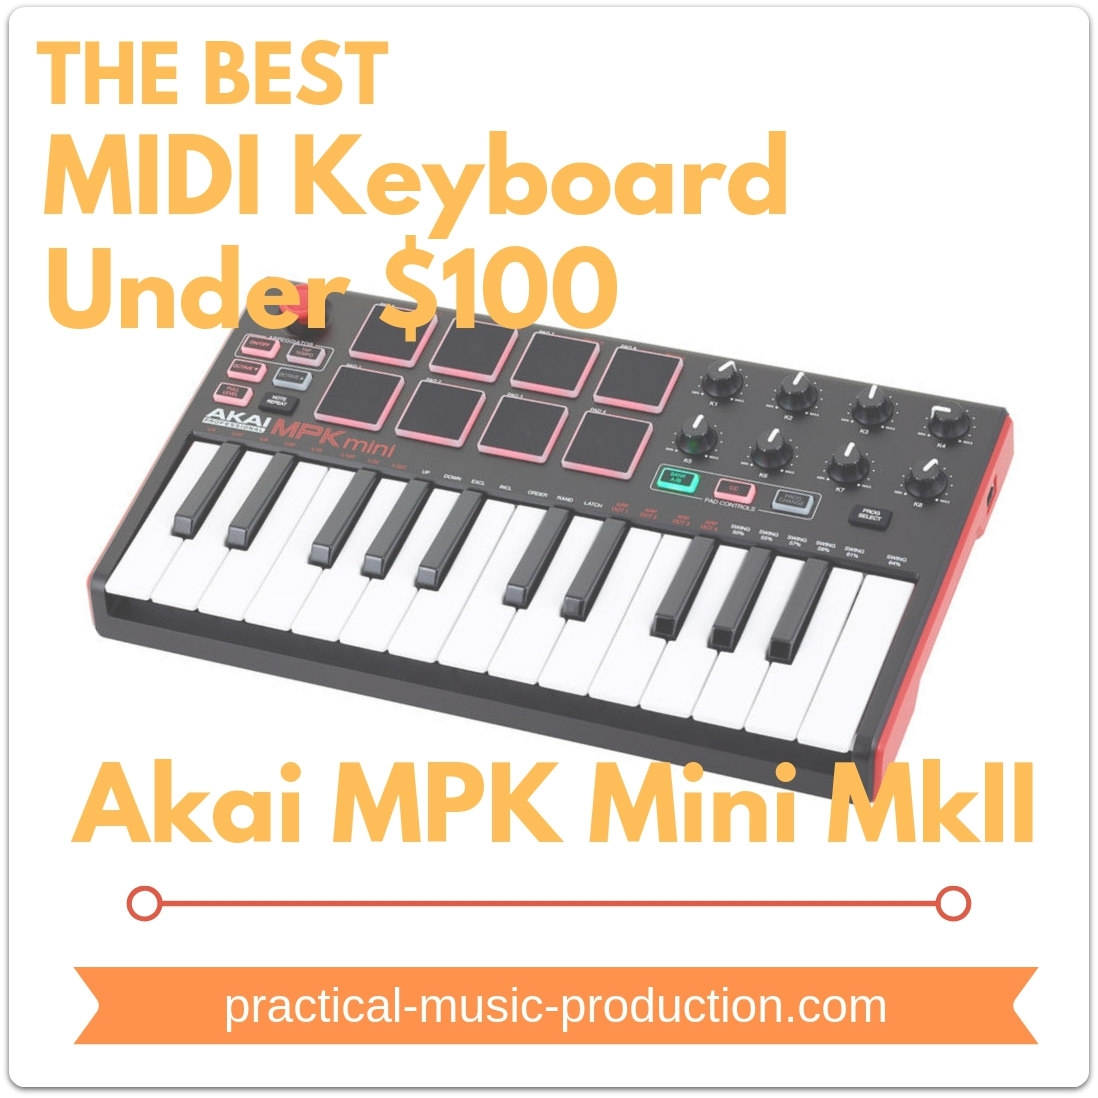 The best MIDI keyboard under $100 is the MPK Mini MkII from Akai Professional - compact but full of great features